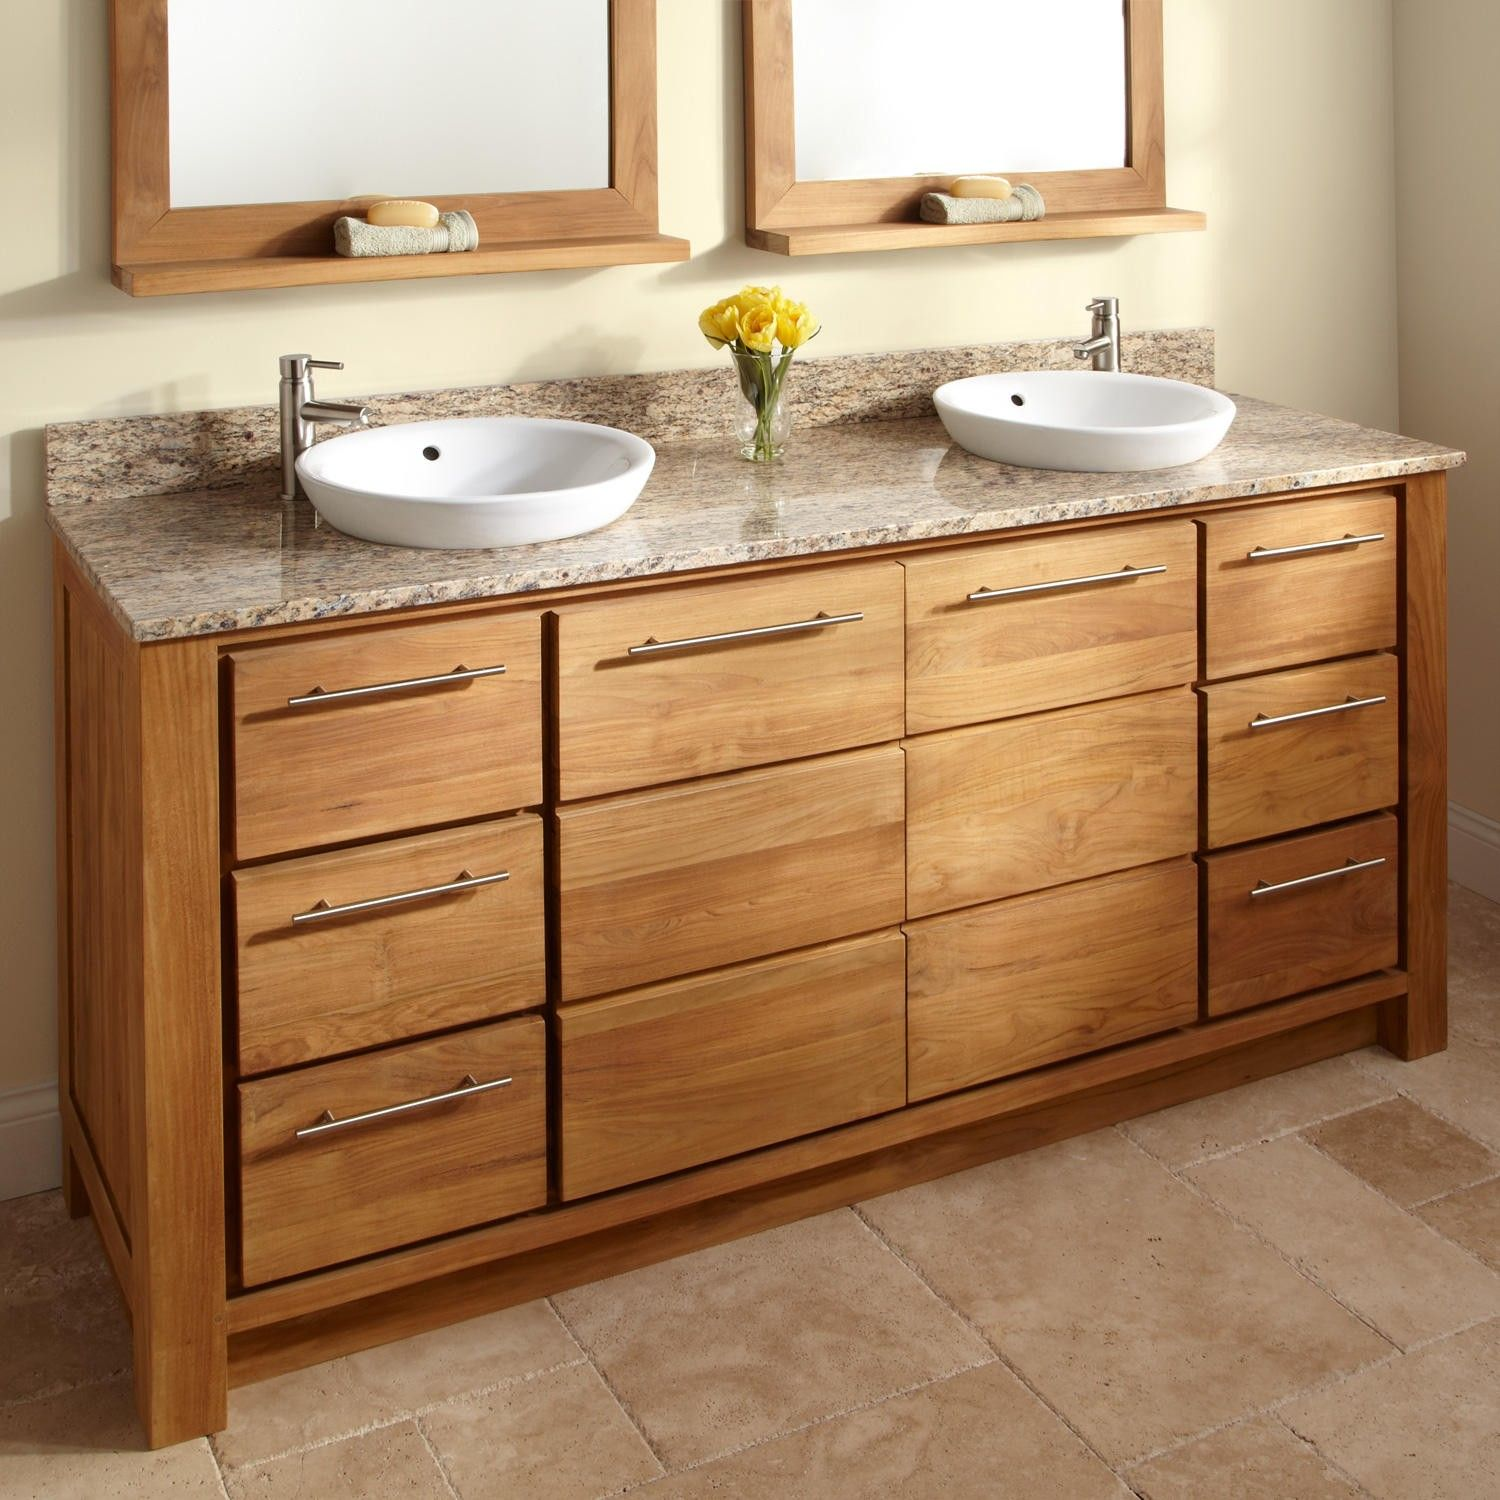 "72"" venica teak double vanity for semi-recessed sinks - double"